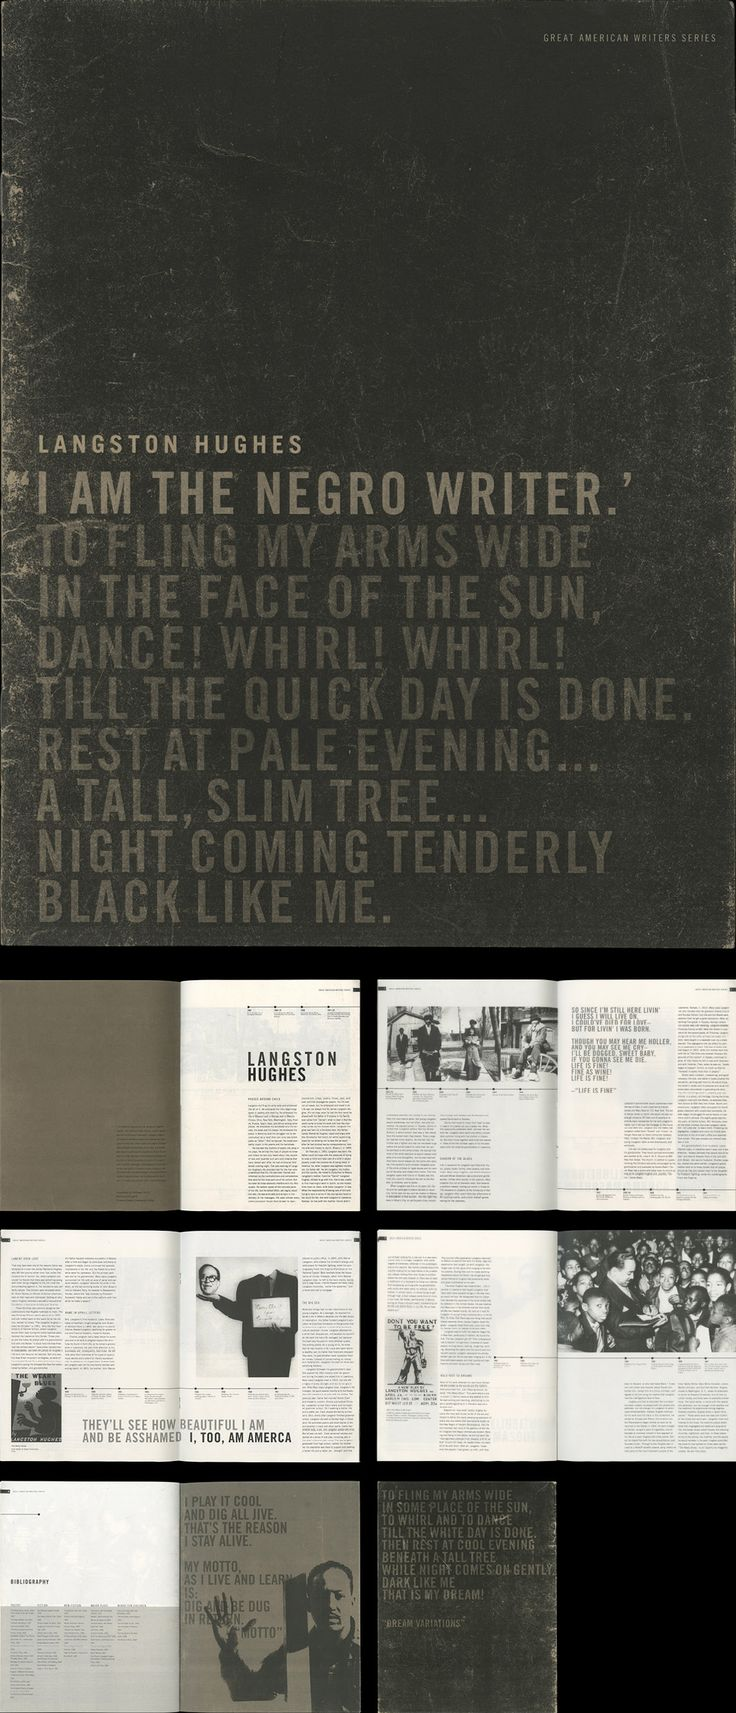 What Is the Meaning of Langston Hughes'